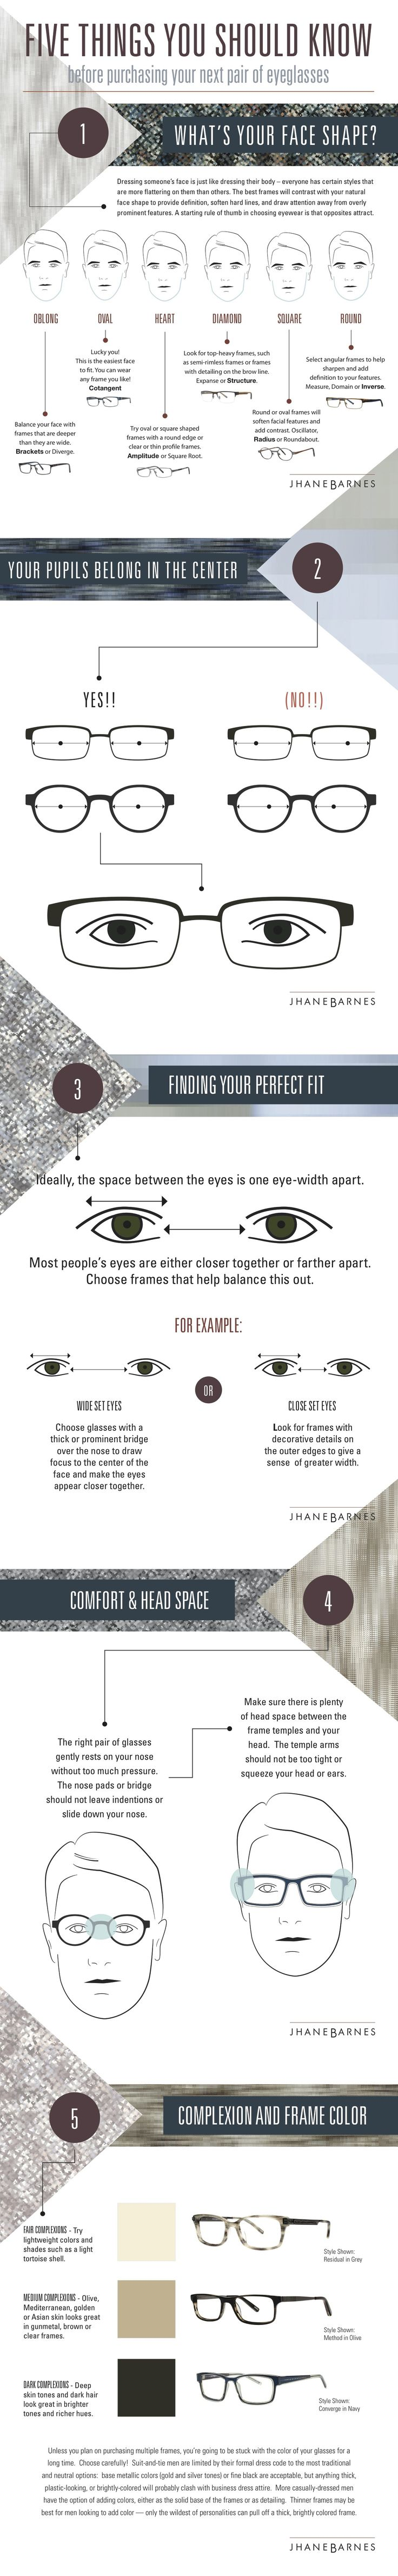 5 things you should know before purchasing your next glasses